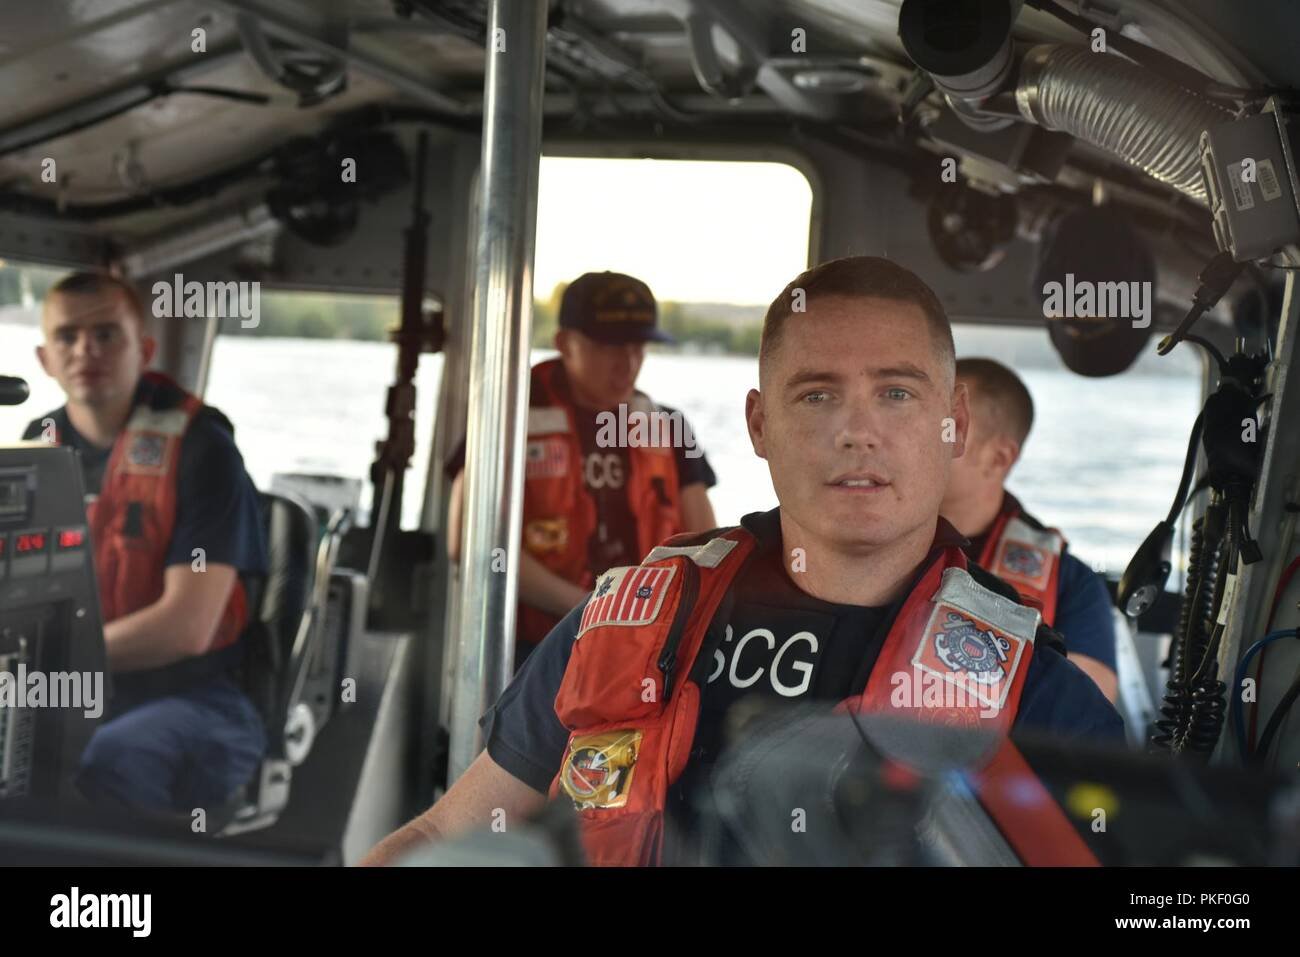 Petty Officer 2nd Class Preston McKernan and a boat crew from Coast Guard Station Seattle patrol Lake Washington aboard a 45-foot Response Boat-Medium, Aug. 3, 2018. The Coast Guard and partnering local and state agencies engaged boaters to help educate them on boating safety and the dangers of boating under the influence during Seattle's Seafair celebration. - Stock Image